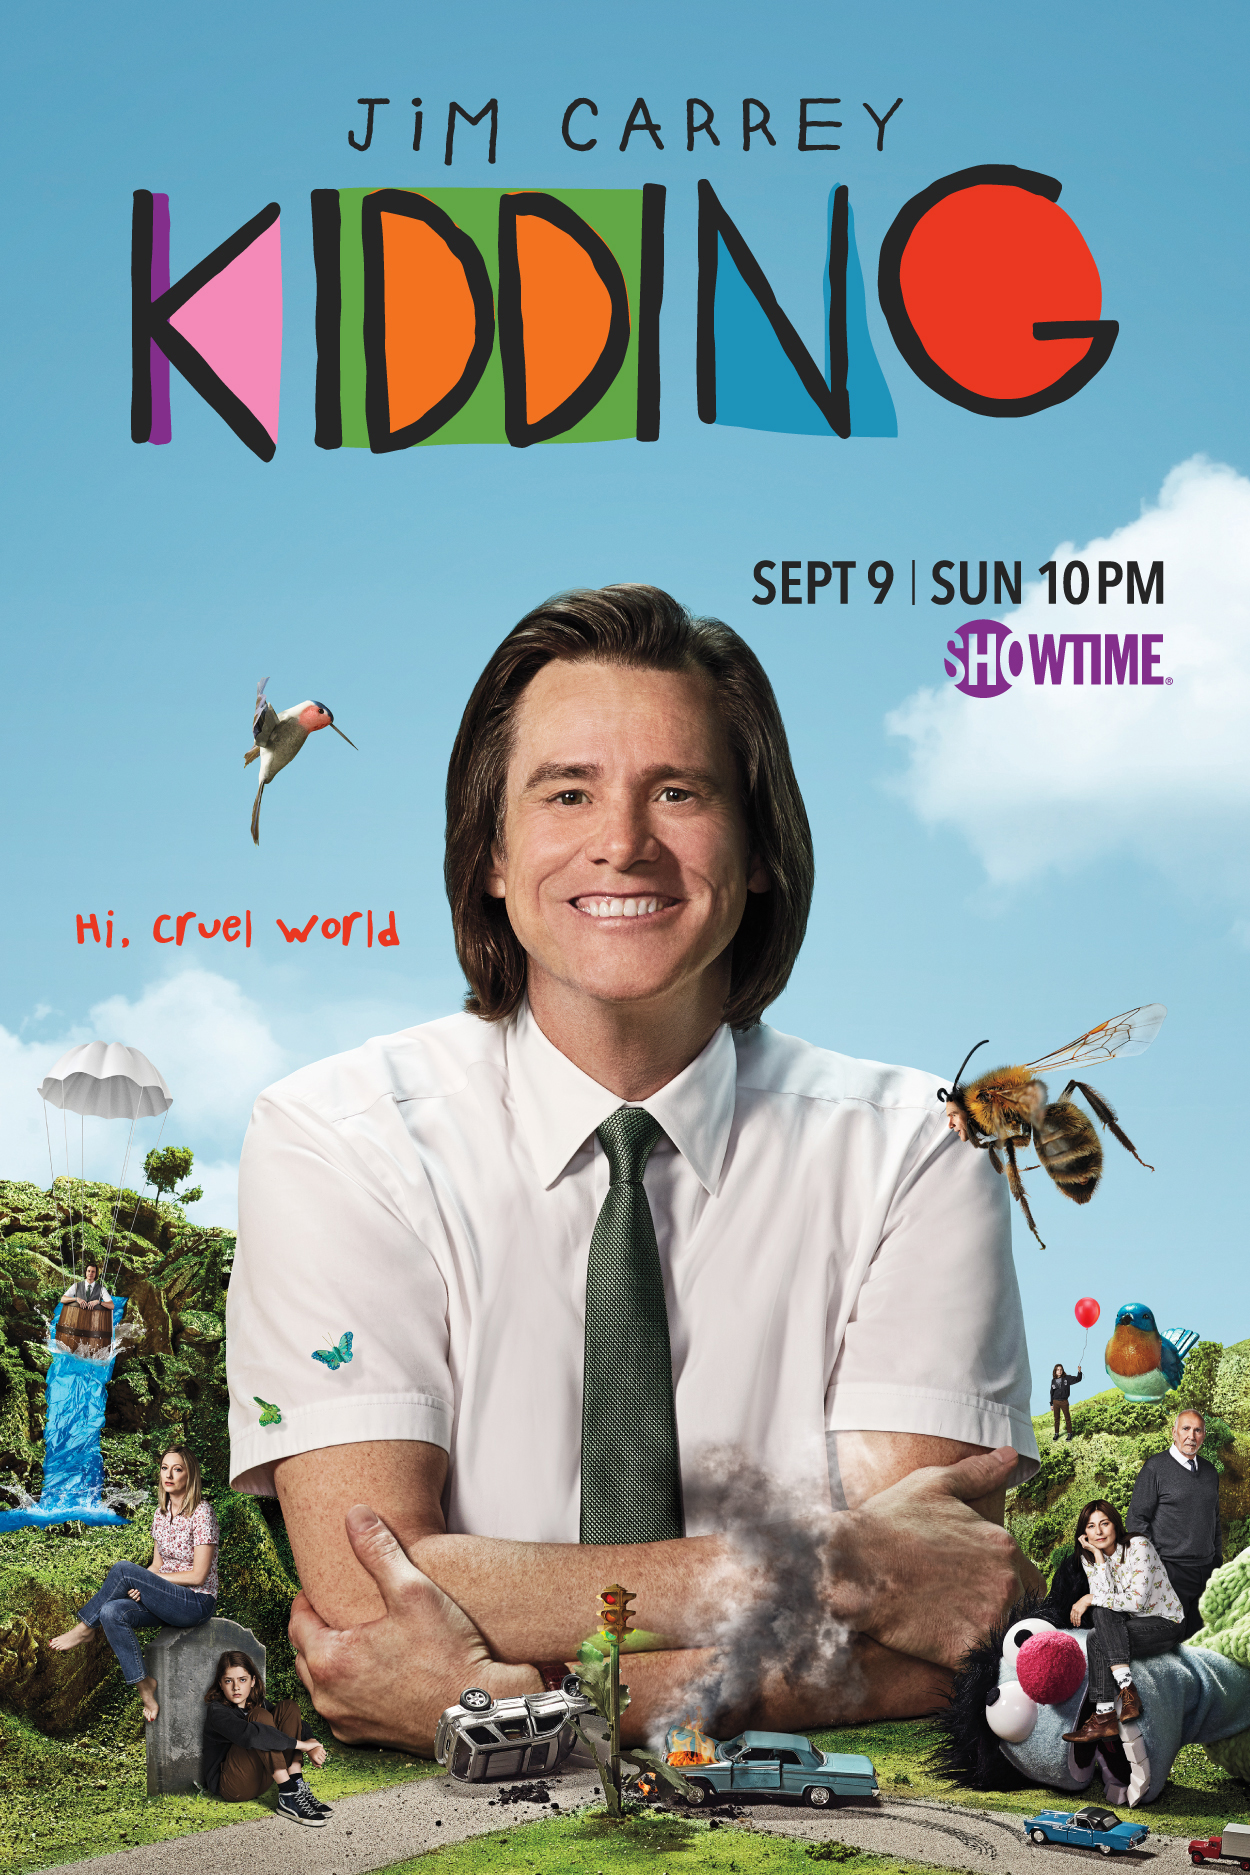 Kidding.S01E06.720p.WEB.h264-CONVOY